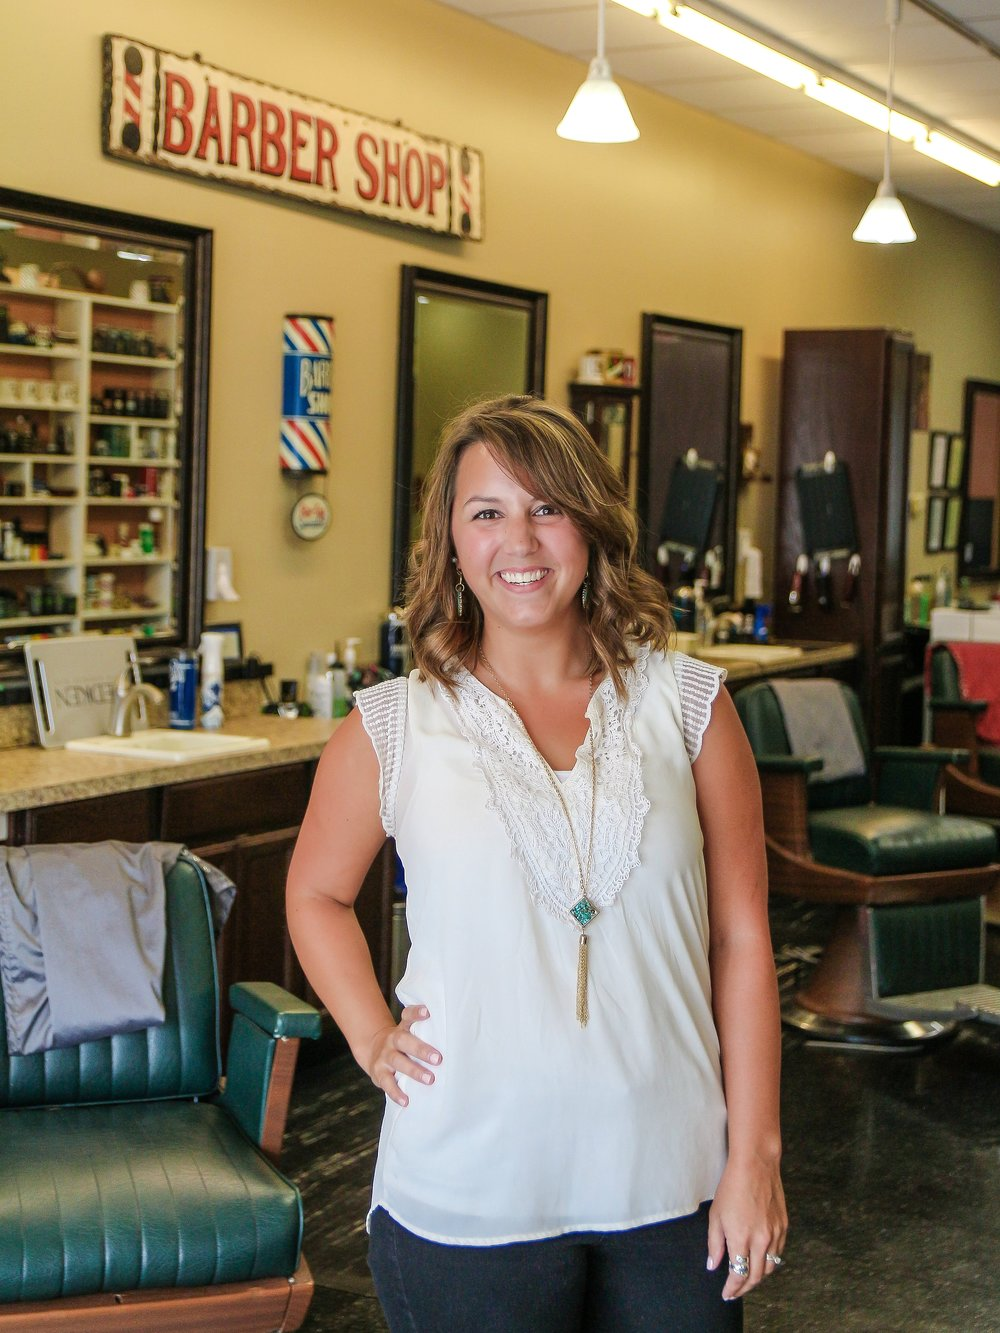 Hannah - Barber, Stylist  Location : Epps Bridge Pkwy  Work Schedule : Mon, Wed, Fri, Sat